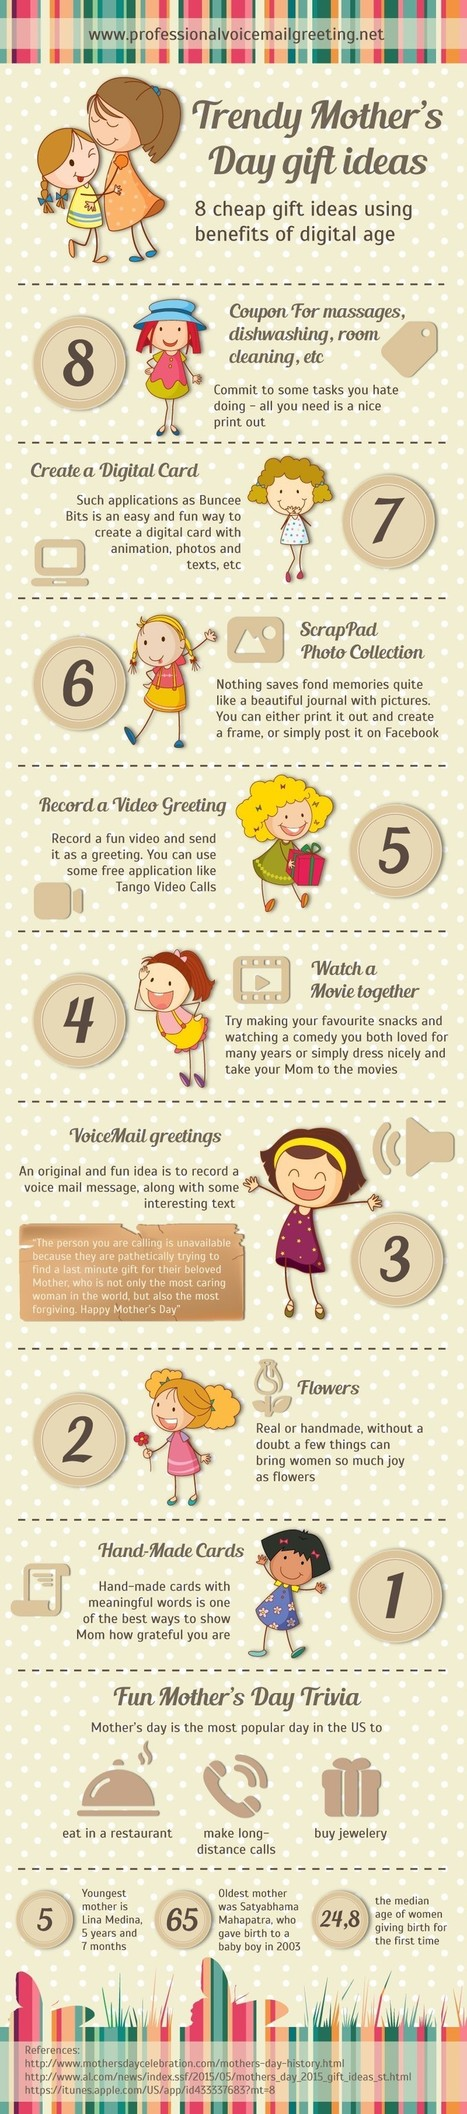 Trendy (But Memorable) Mother's Day Gift Ideas 2016 | All Infographics | Scoop.it